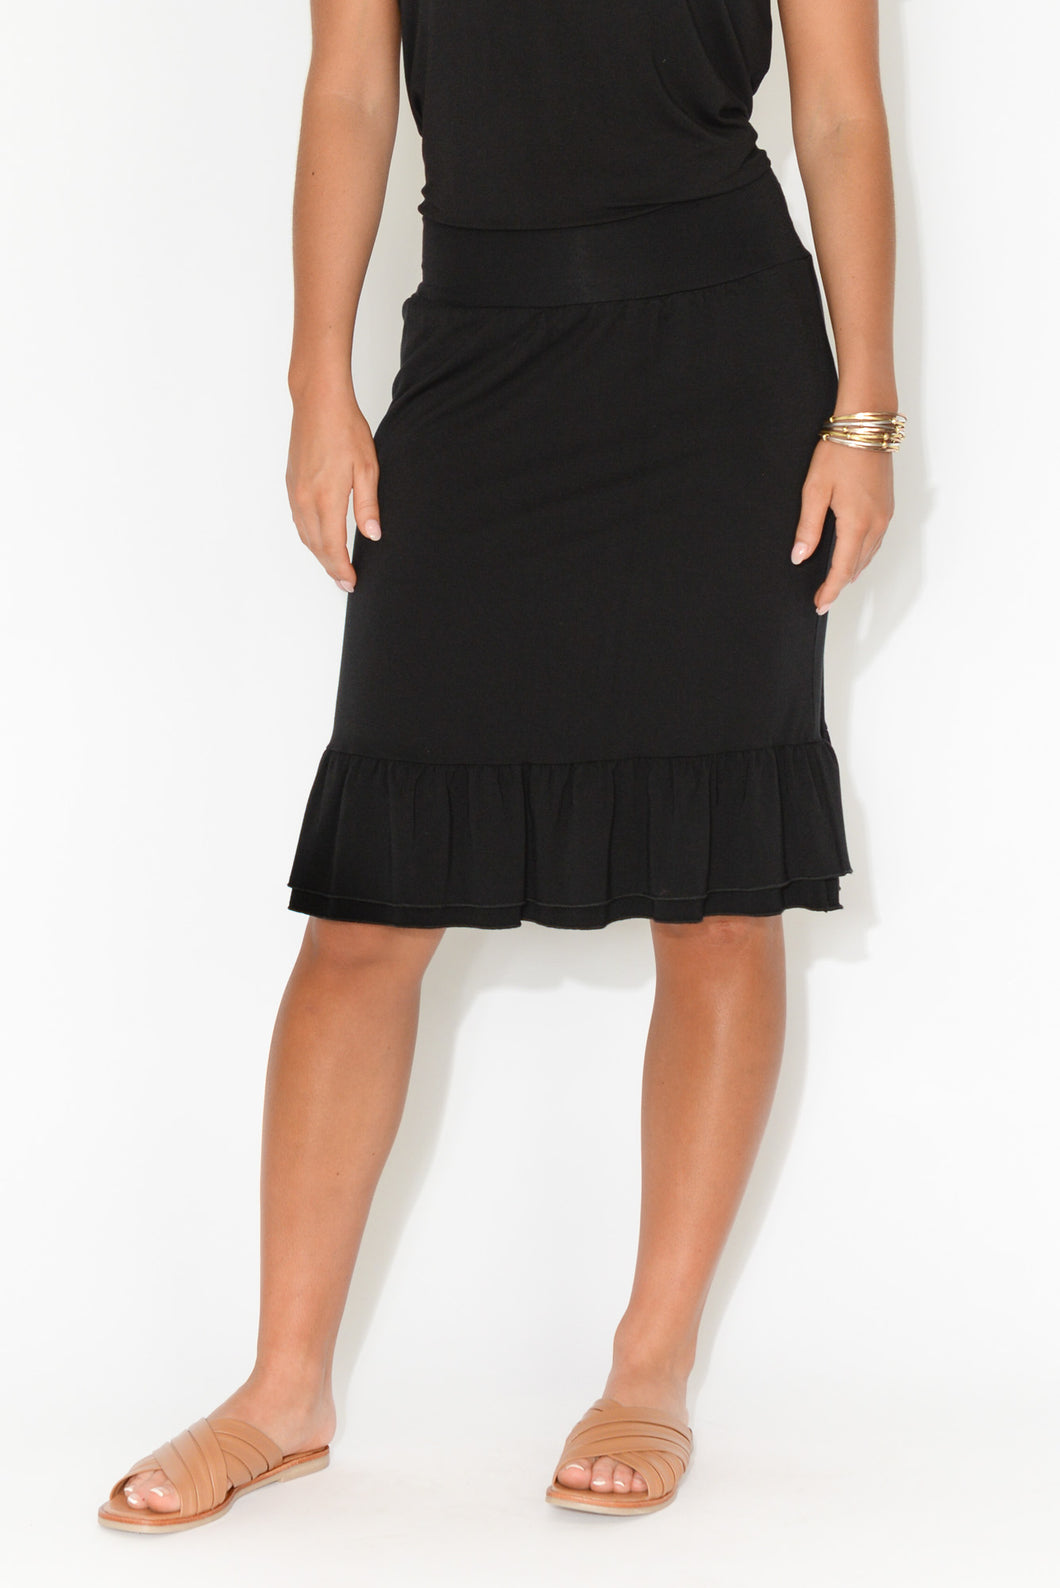 Katy Black Frill Bamboo Skirt